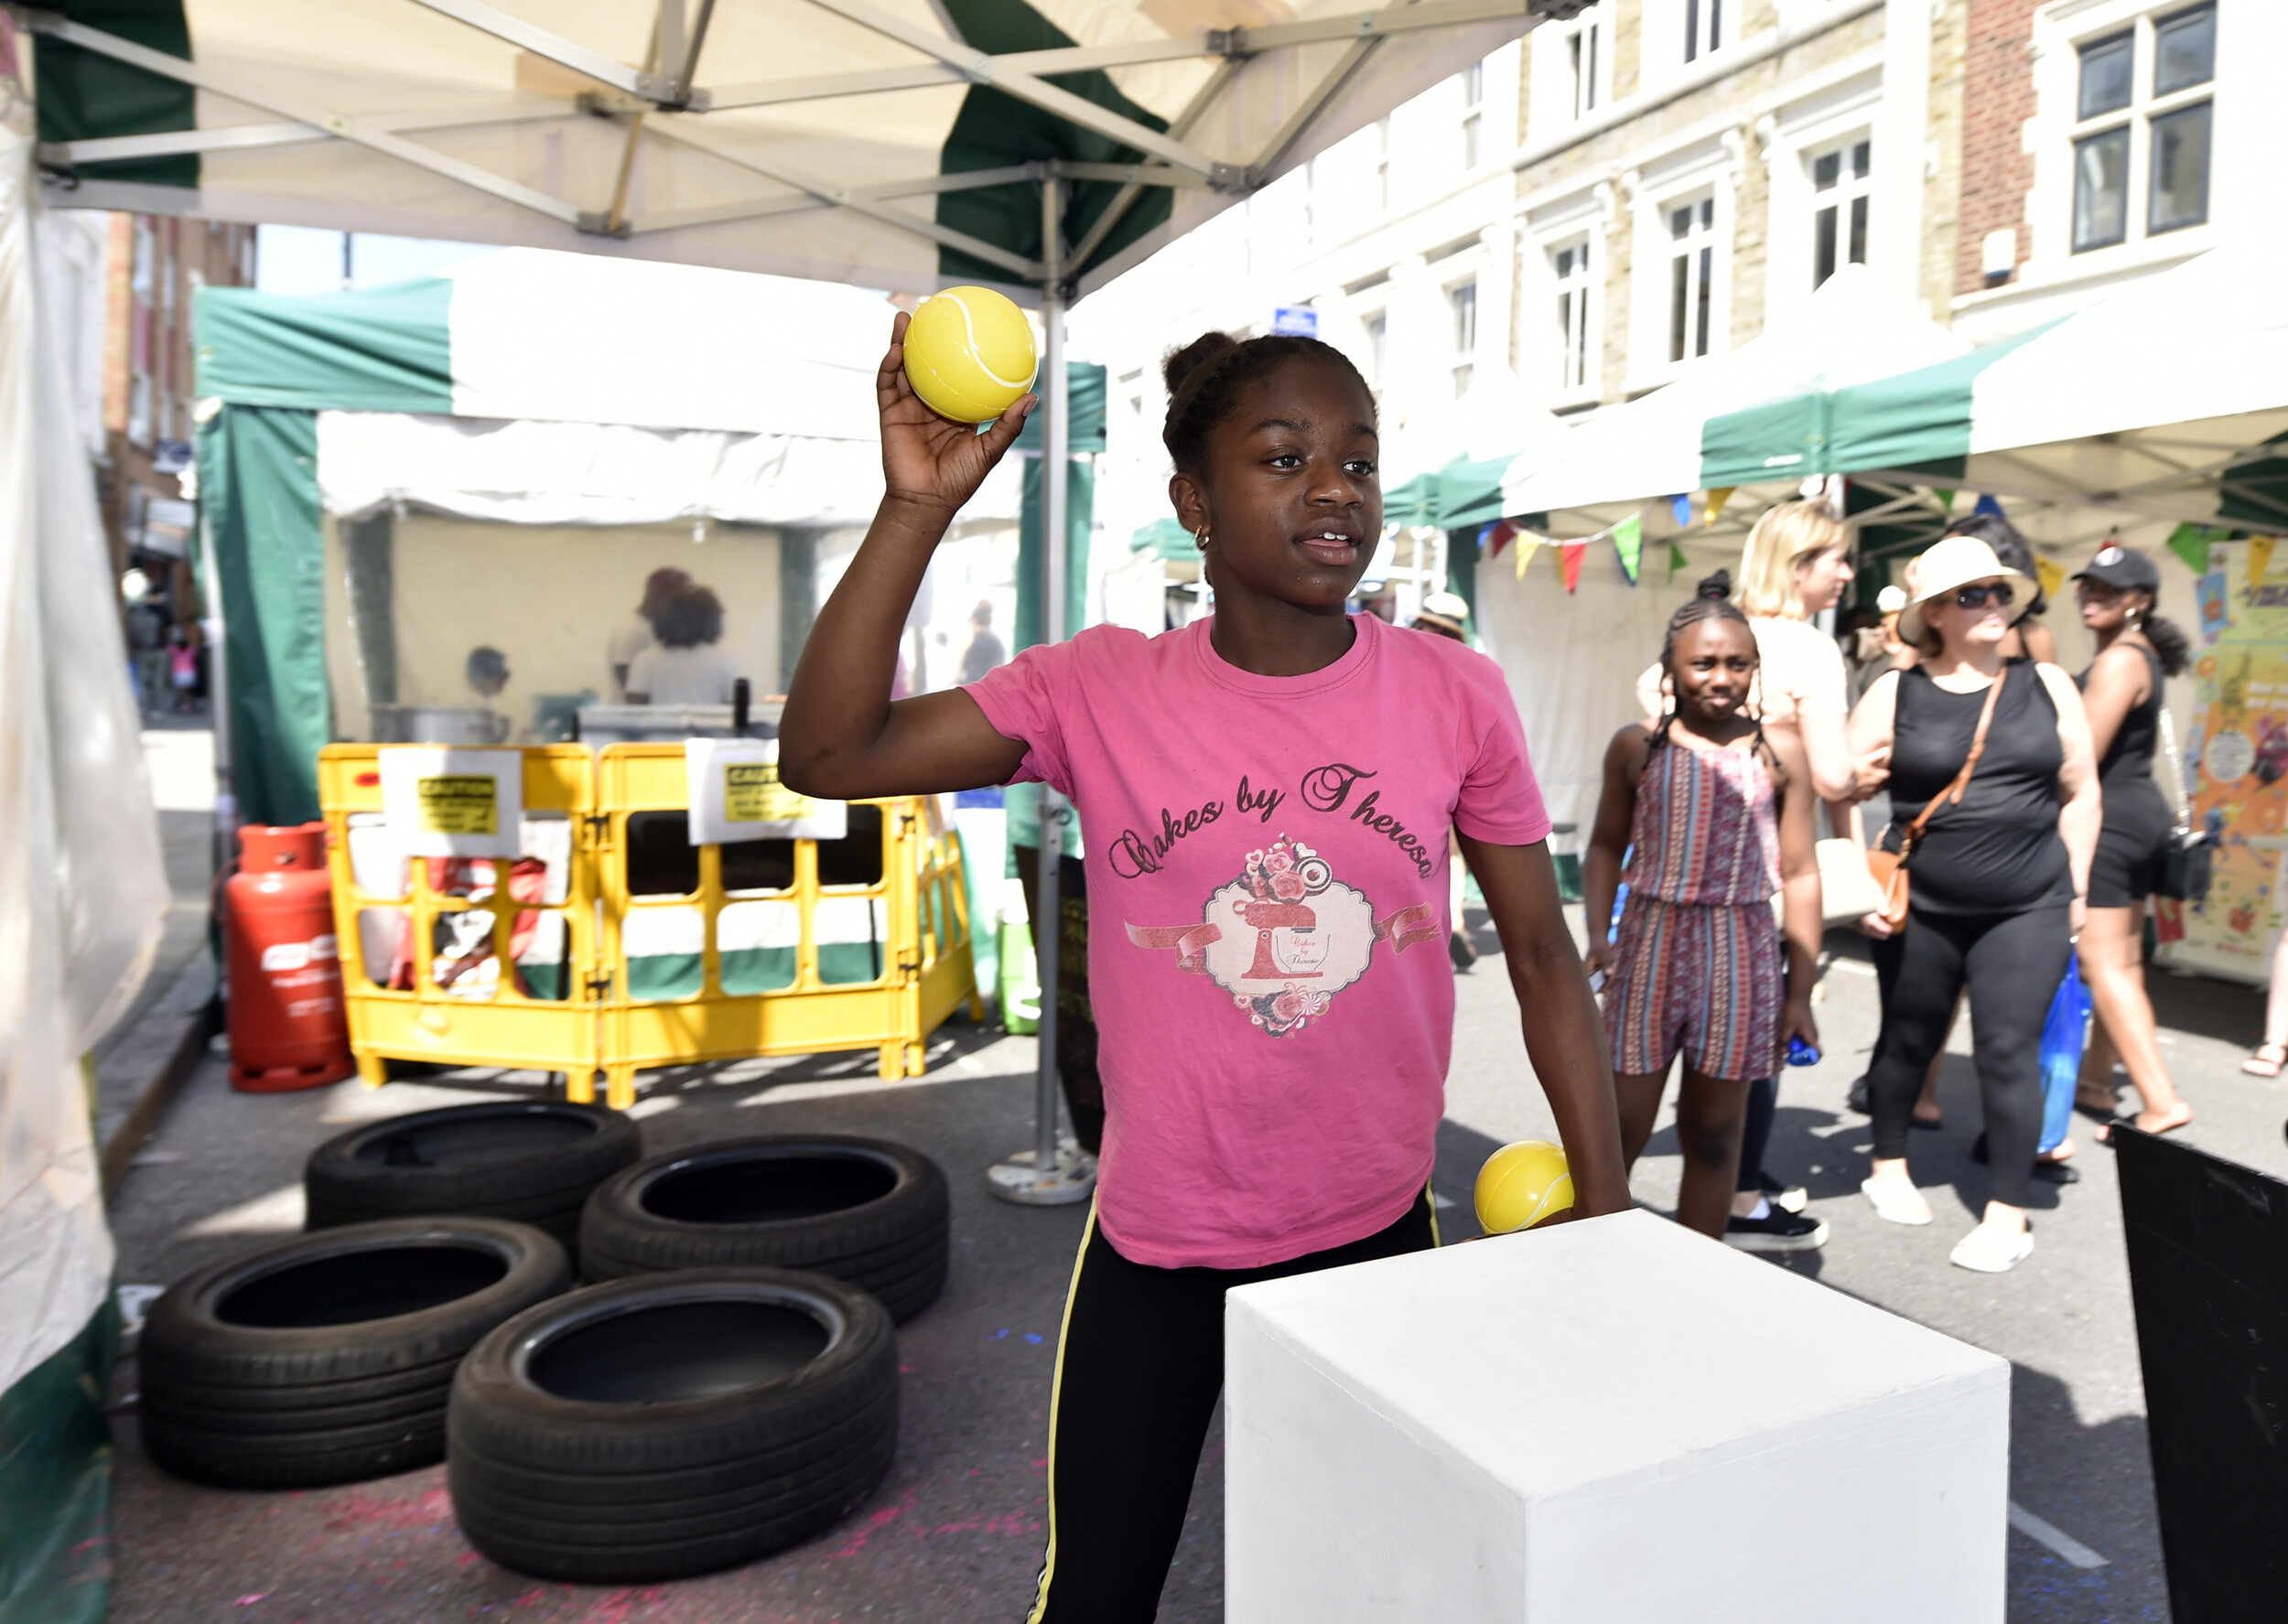 Young people taking part in PEER Ambassador Naile's obstacle course incorporating plinths usually used in an exhibition